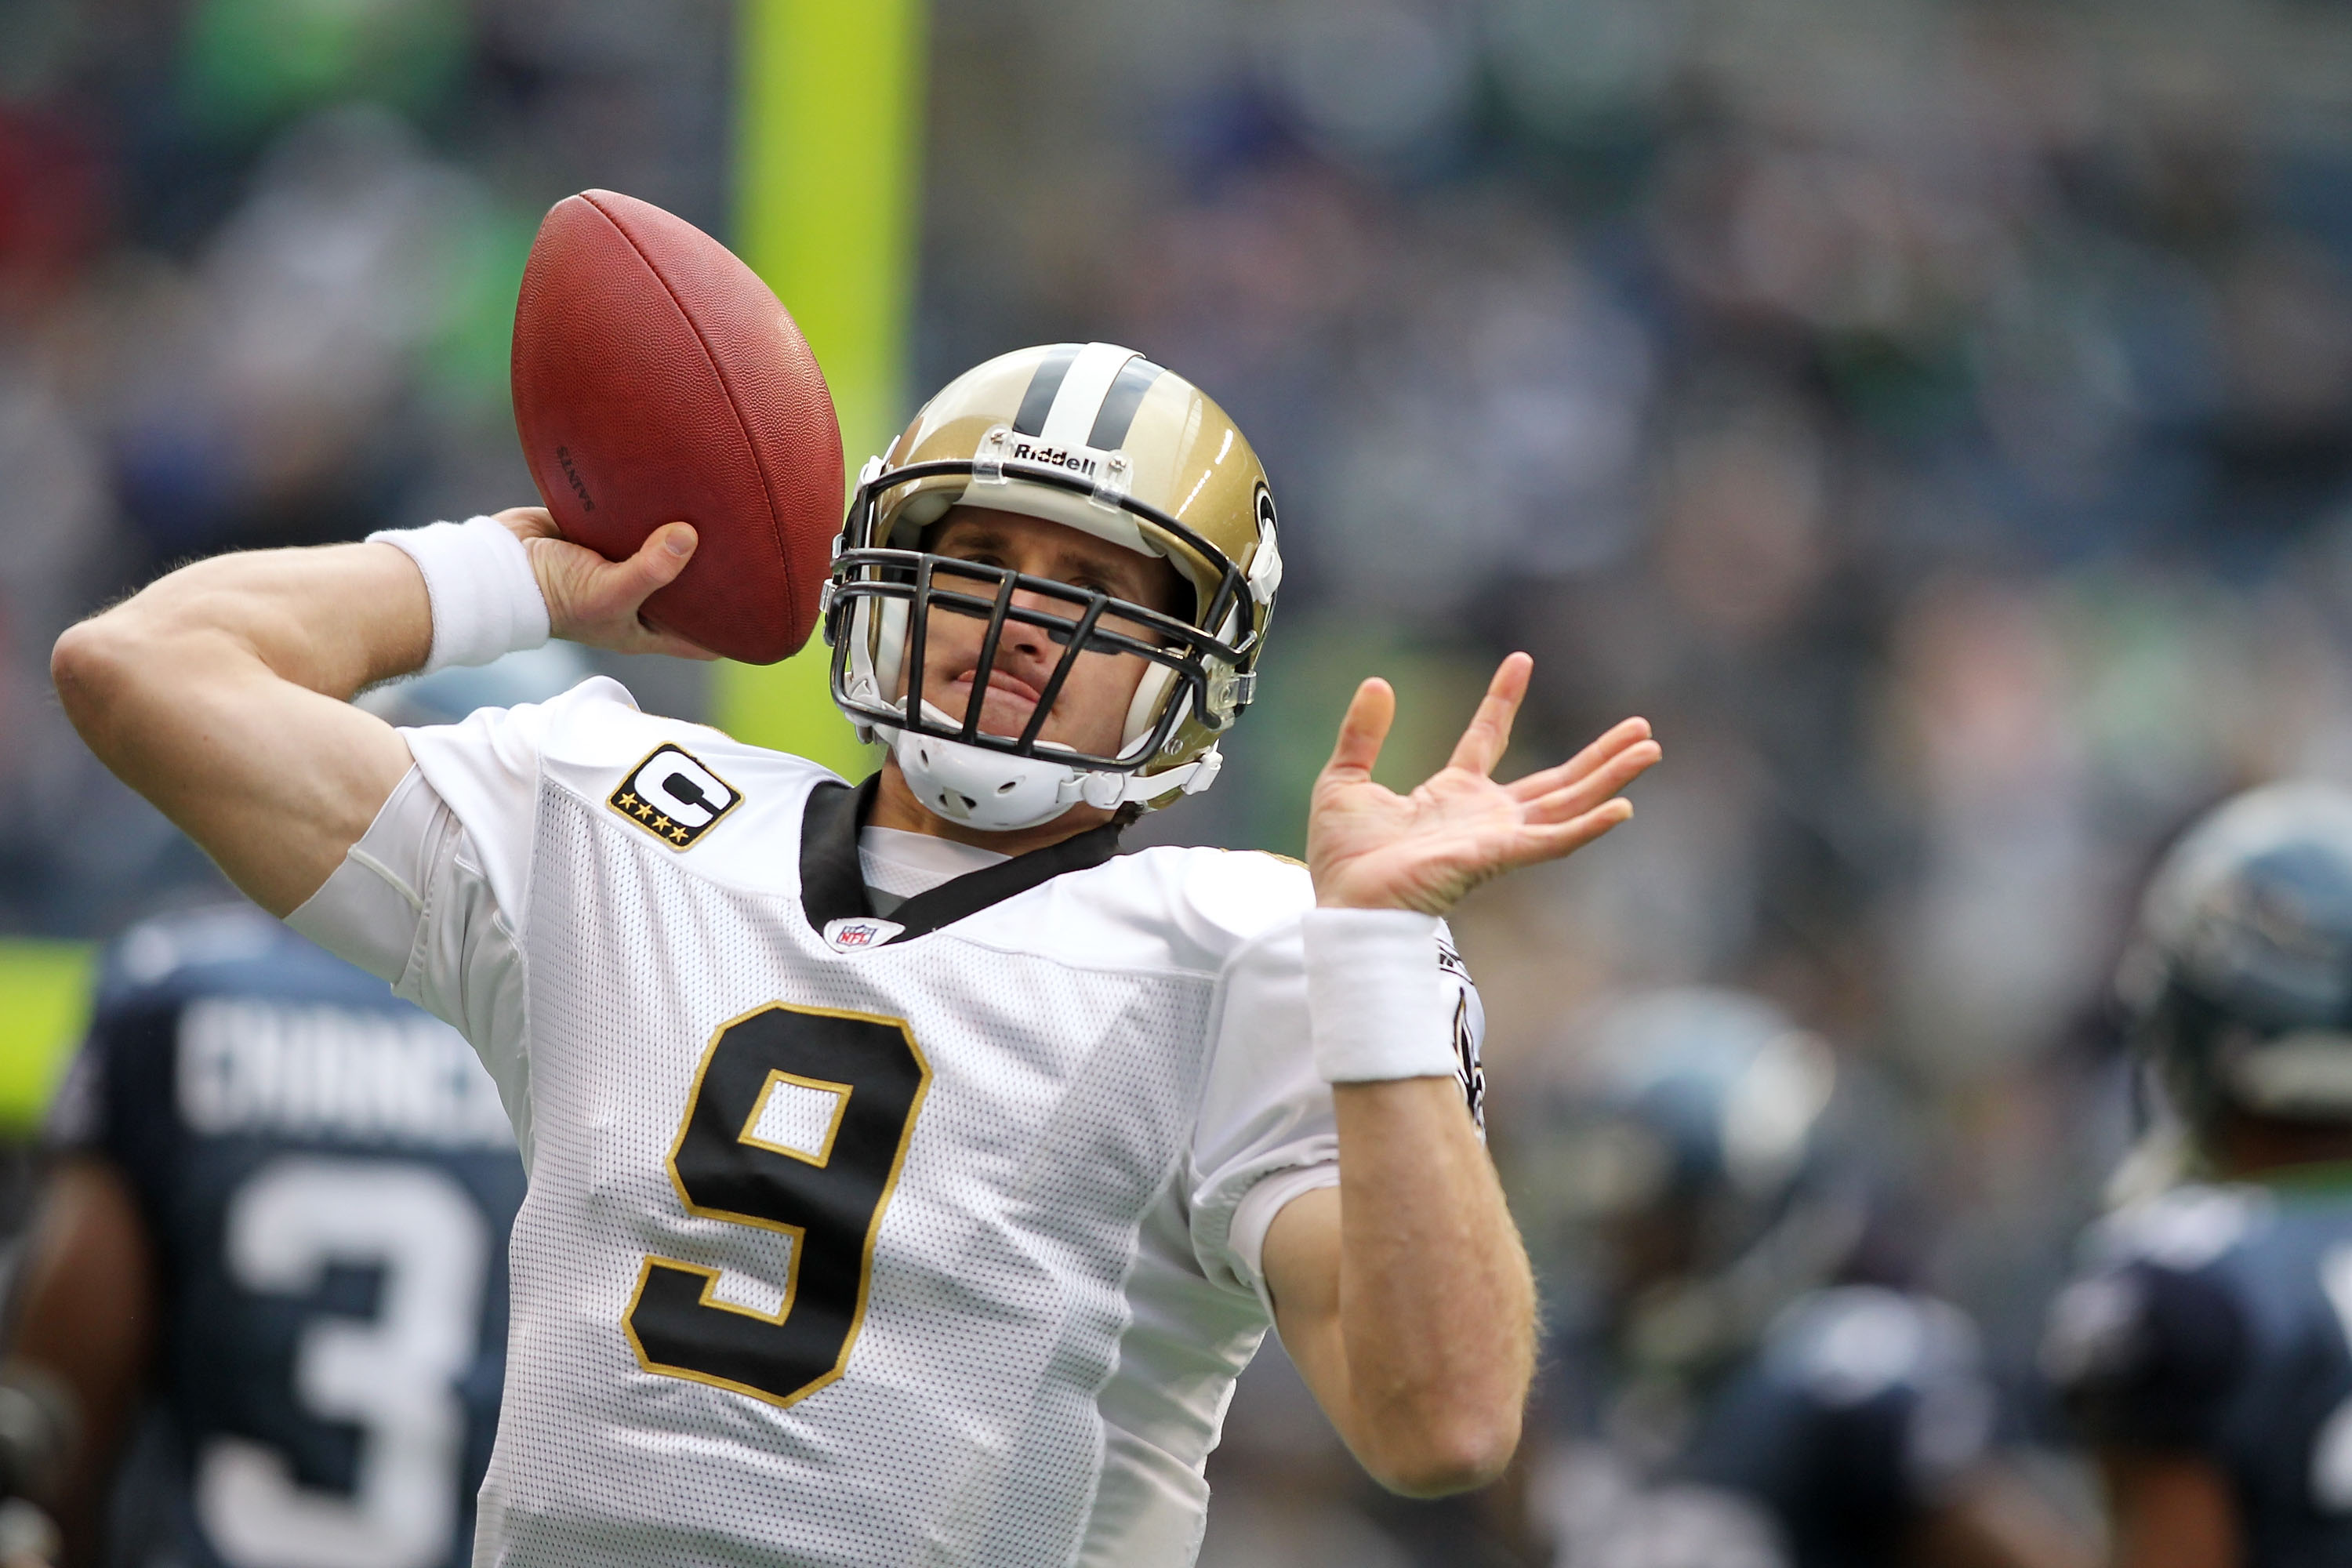 SEATTLE, WA - JANUARY 08:  Quarterback Drew Brees #9 of the New Orleans Saints throws the ball against the Seattle Seahawks during the 2011 NFC wild-card playoff game at Qwest Field on January 8, 2011 in Seattle, Washington.  (Photo by Jonathan Ferrey/Get